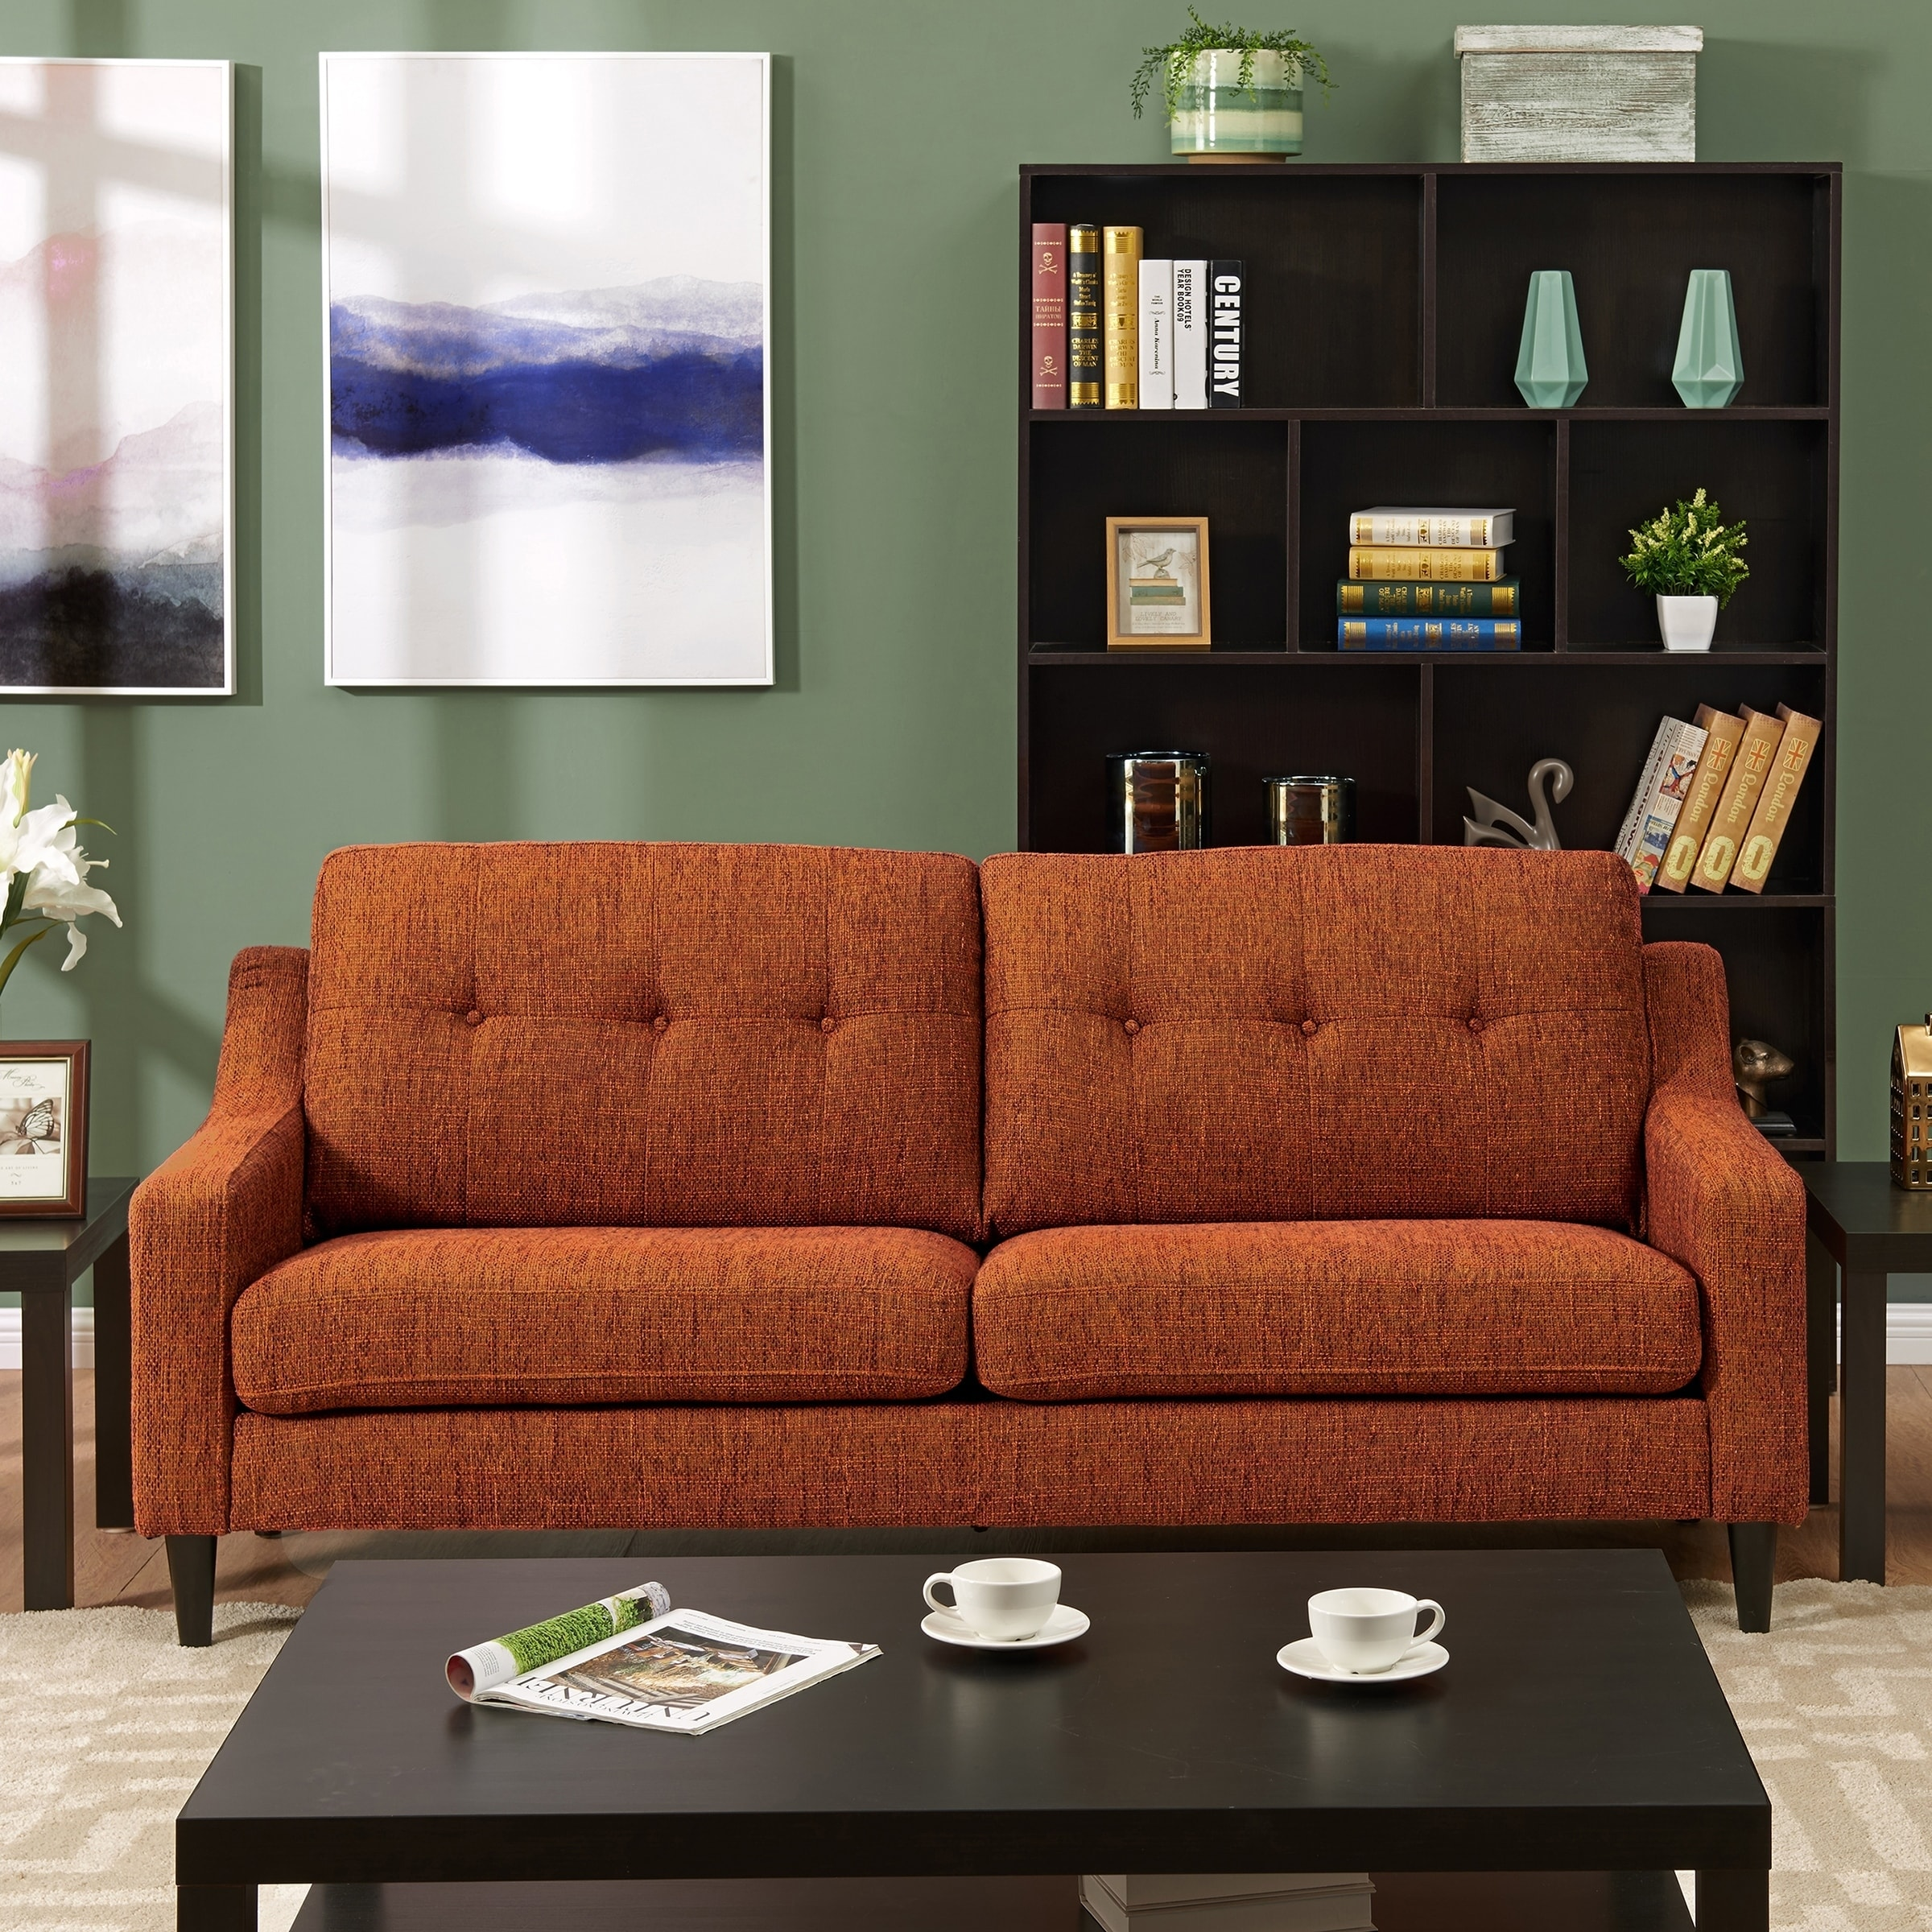 D Box Sessel Buy Handy Living Sofas Couches Online At Overstock Our Best